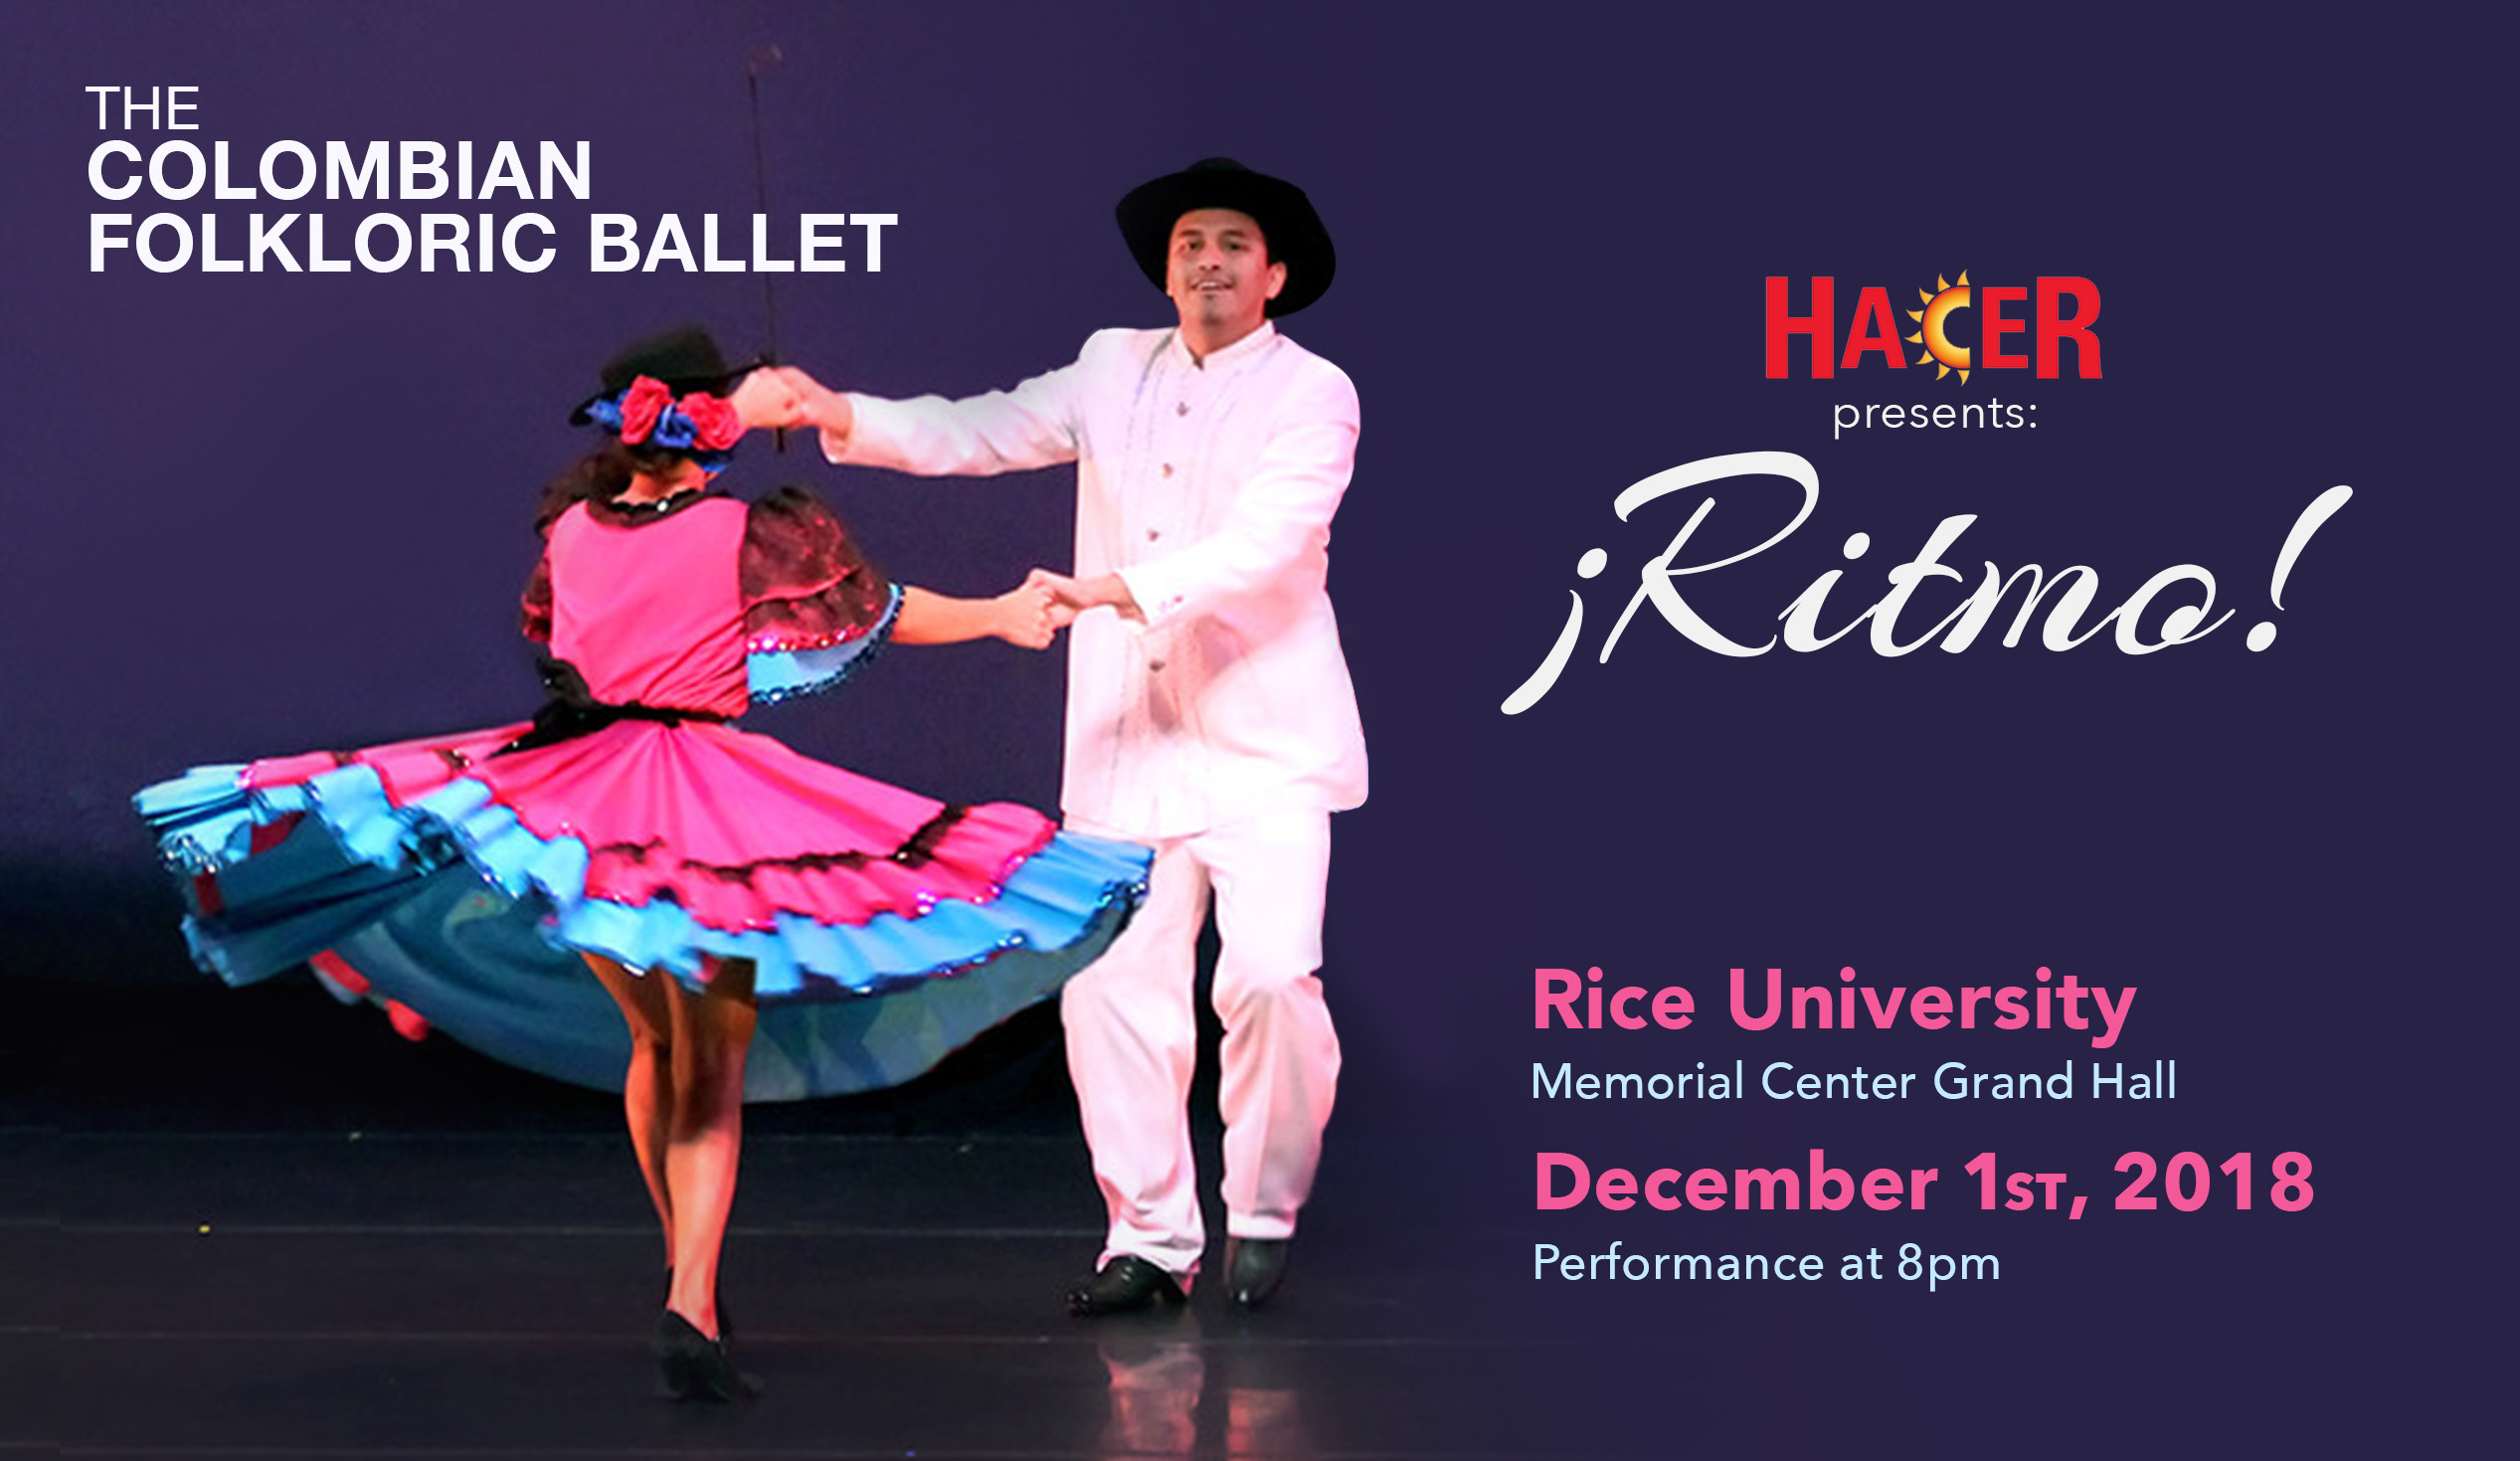 The Colombian Folkloric Ballet. Hacer presenta ritmo. Rice University